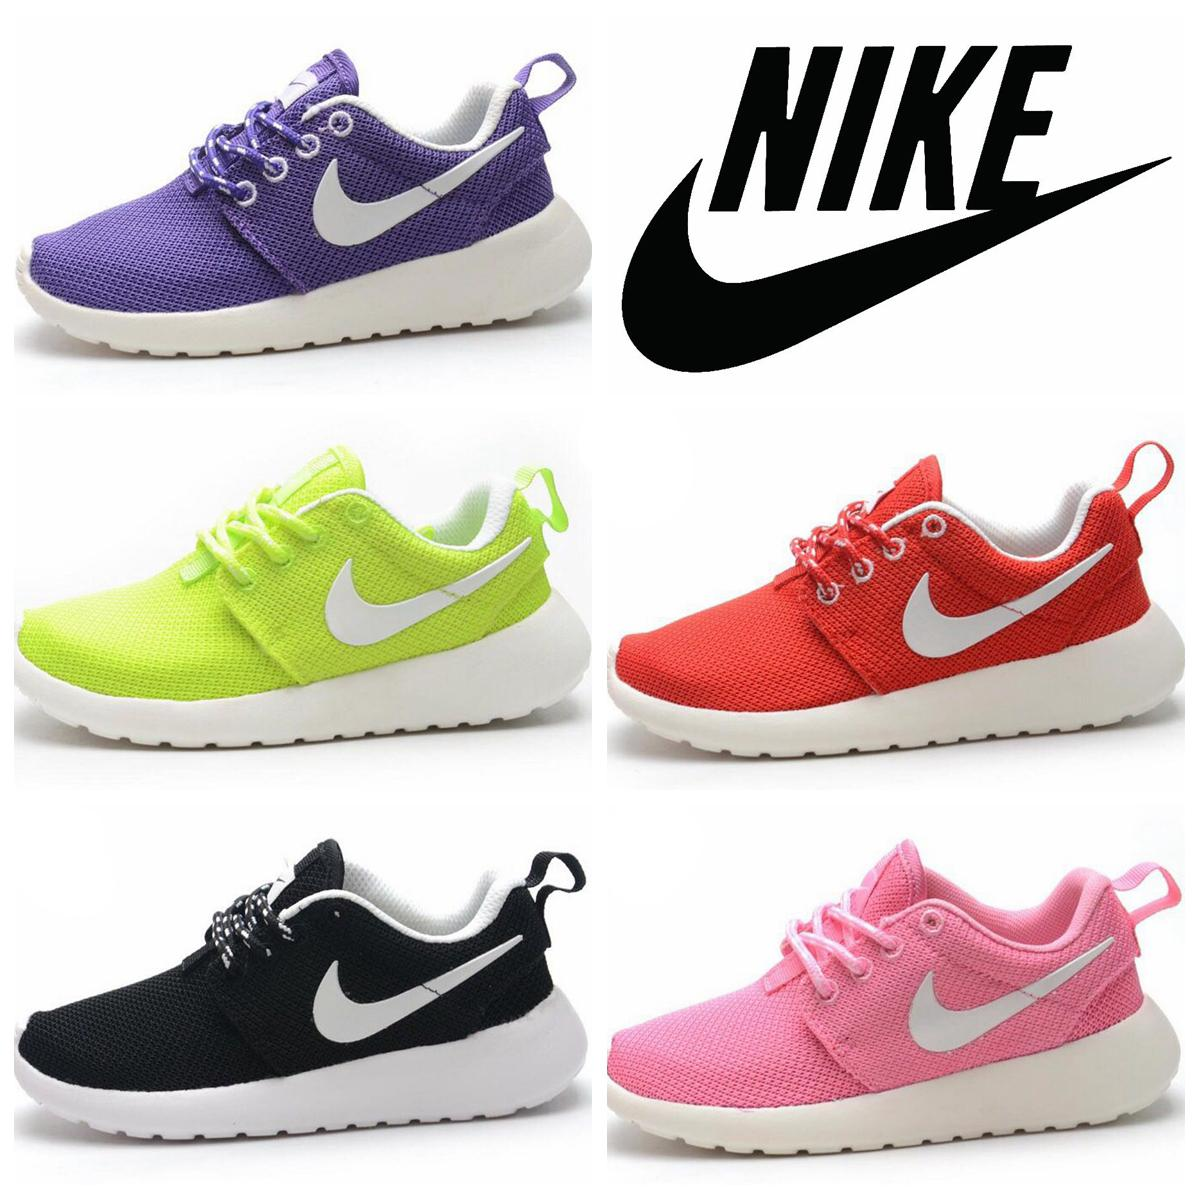 Nike Roshe Run Childrens Athletic Shoes Boys And Girls Running Shoes Kids  Casual Boots Babys Sneakers Sport Shoes Size 9c 3y Kids Footwear Black  Running ...